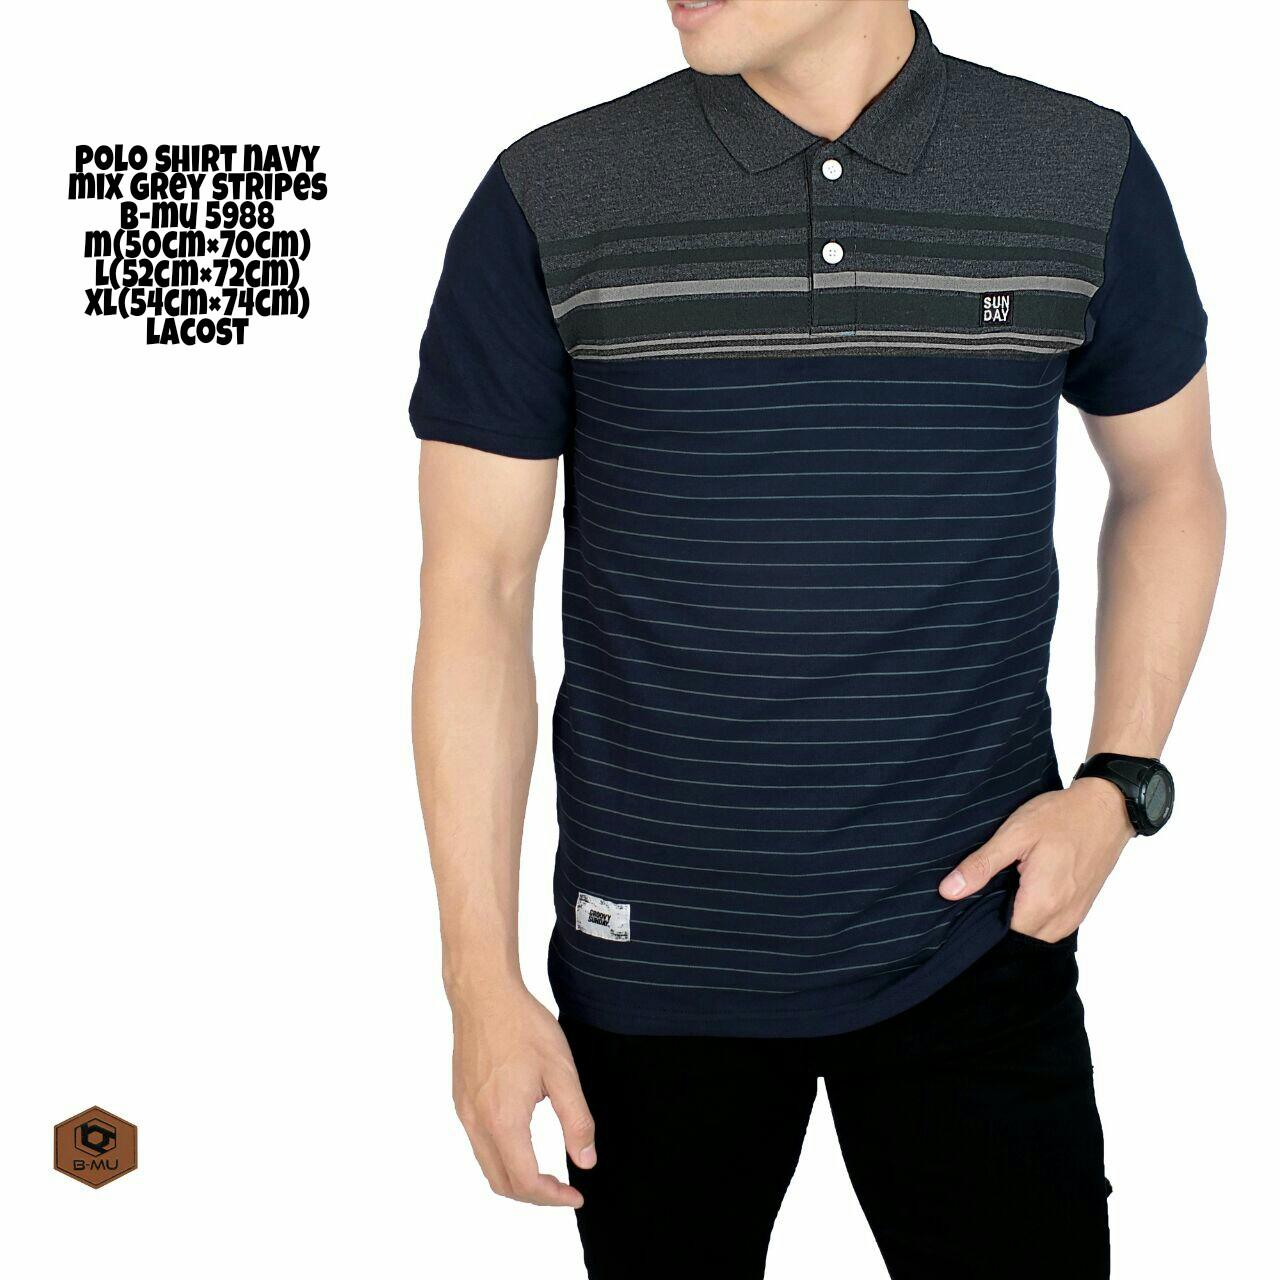 the most Kaos Polo shirt hitam mix Lines garis kaos kerah pria baju polo  casual 3784d0fa15